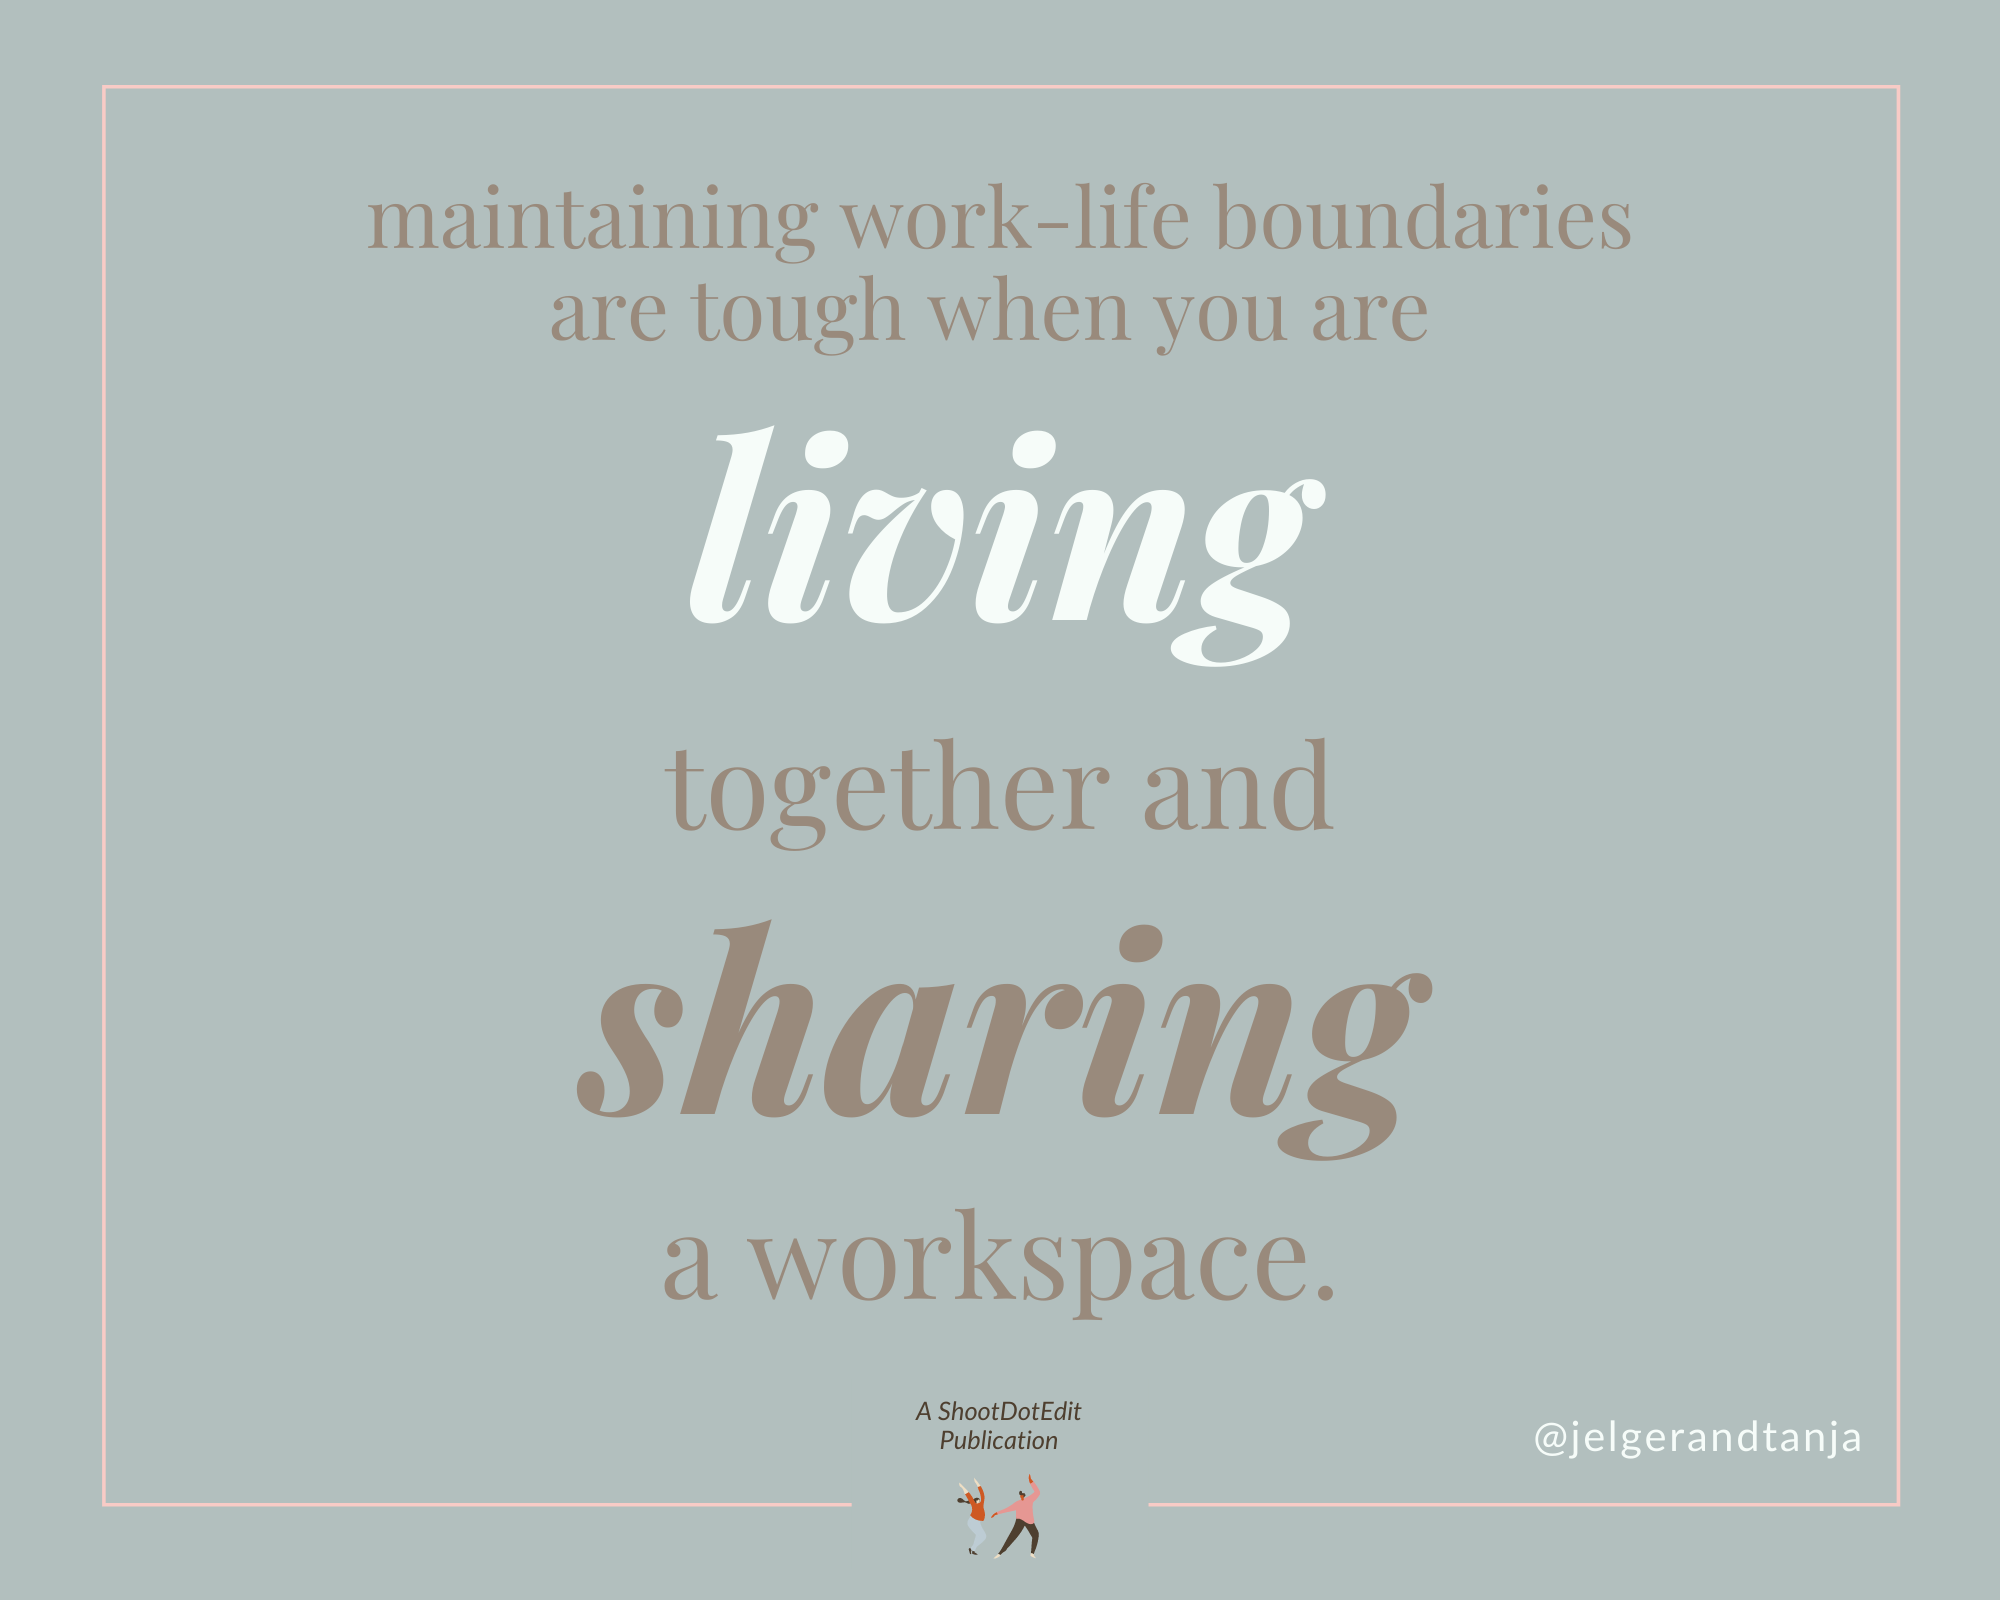 Infographic stating maintaining work life boundaries are tough when you are living together and sharing a workspace